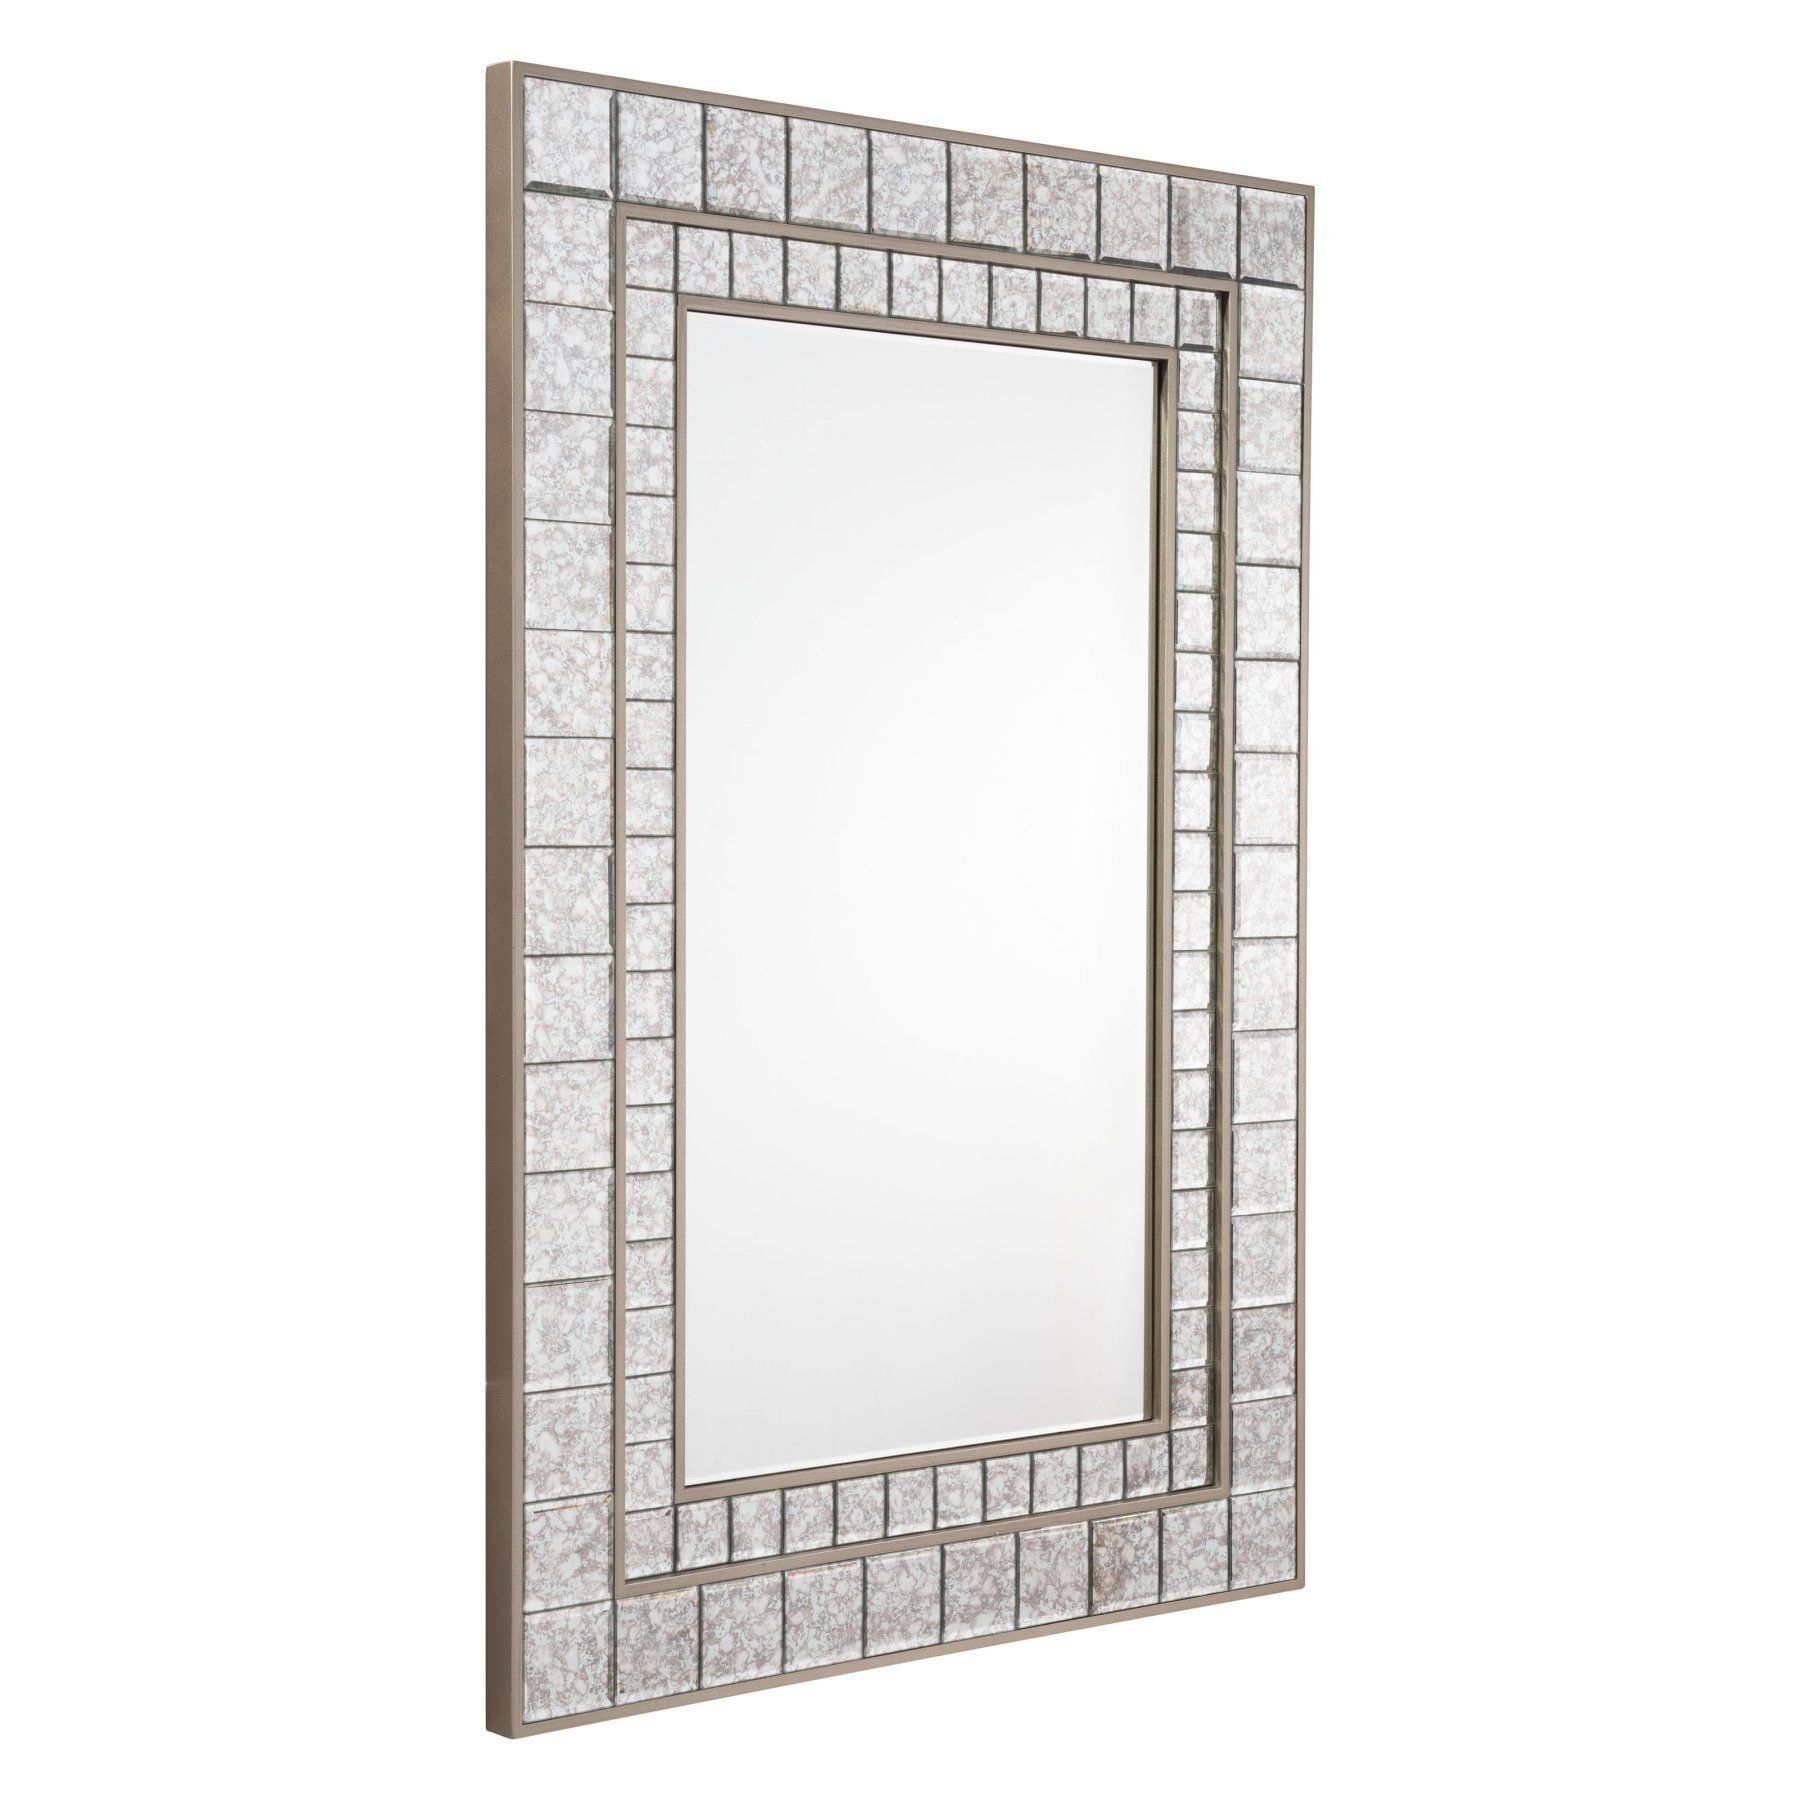 Zuo Modern Contemporary Antique Square Mini Mirror Framed inside Pennsburg Rectangle Wall Mirrors (Image 30 of 30)